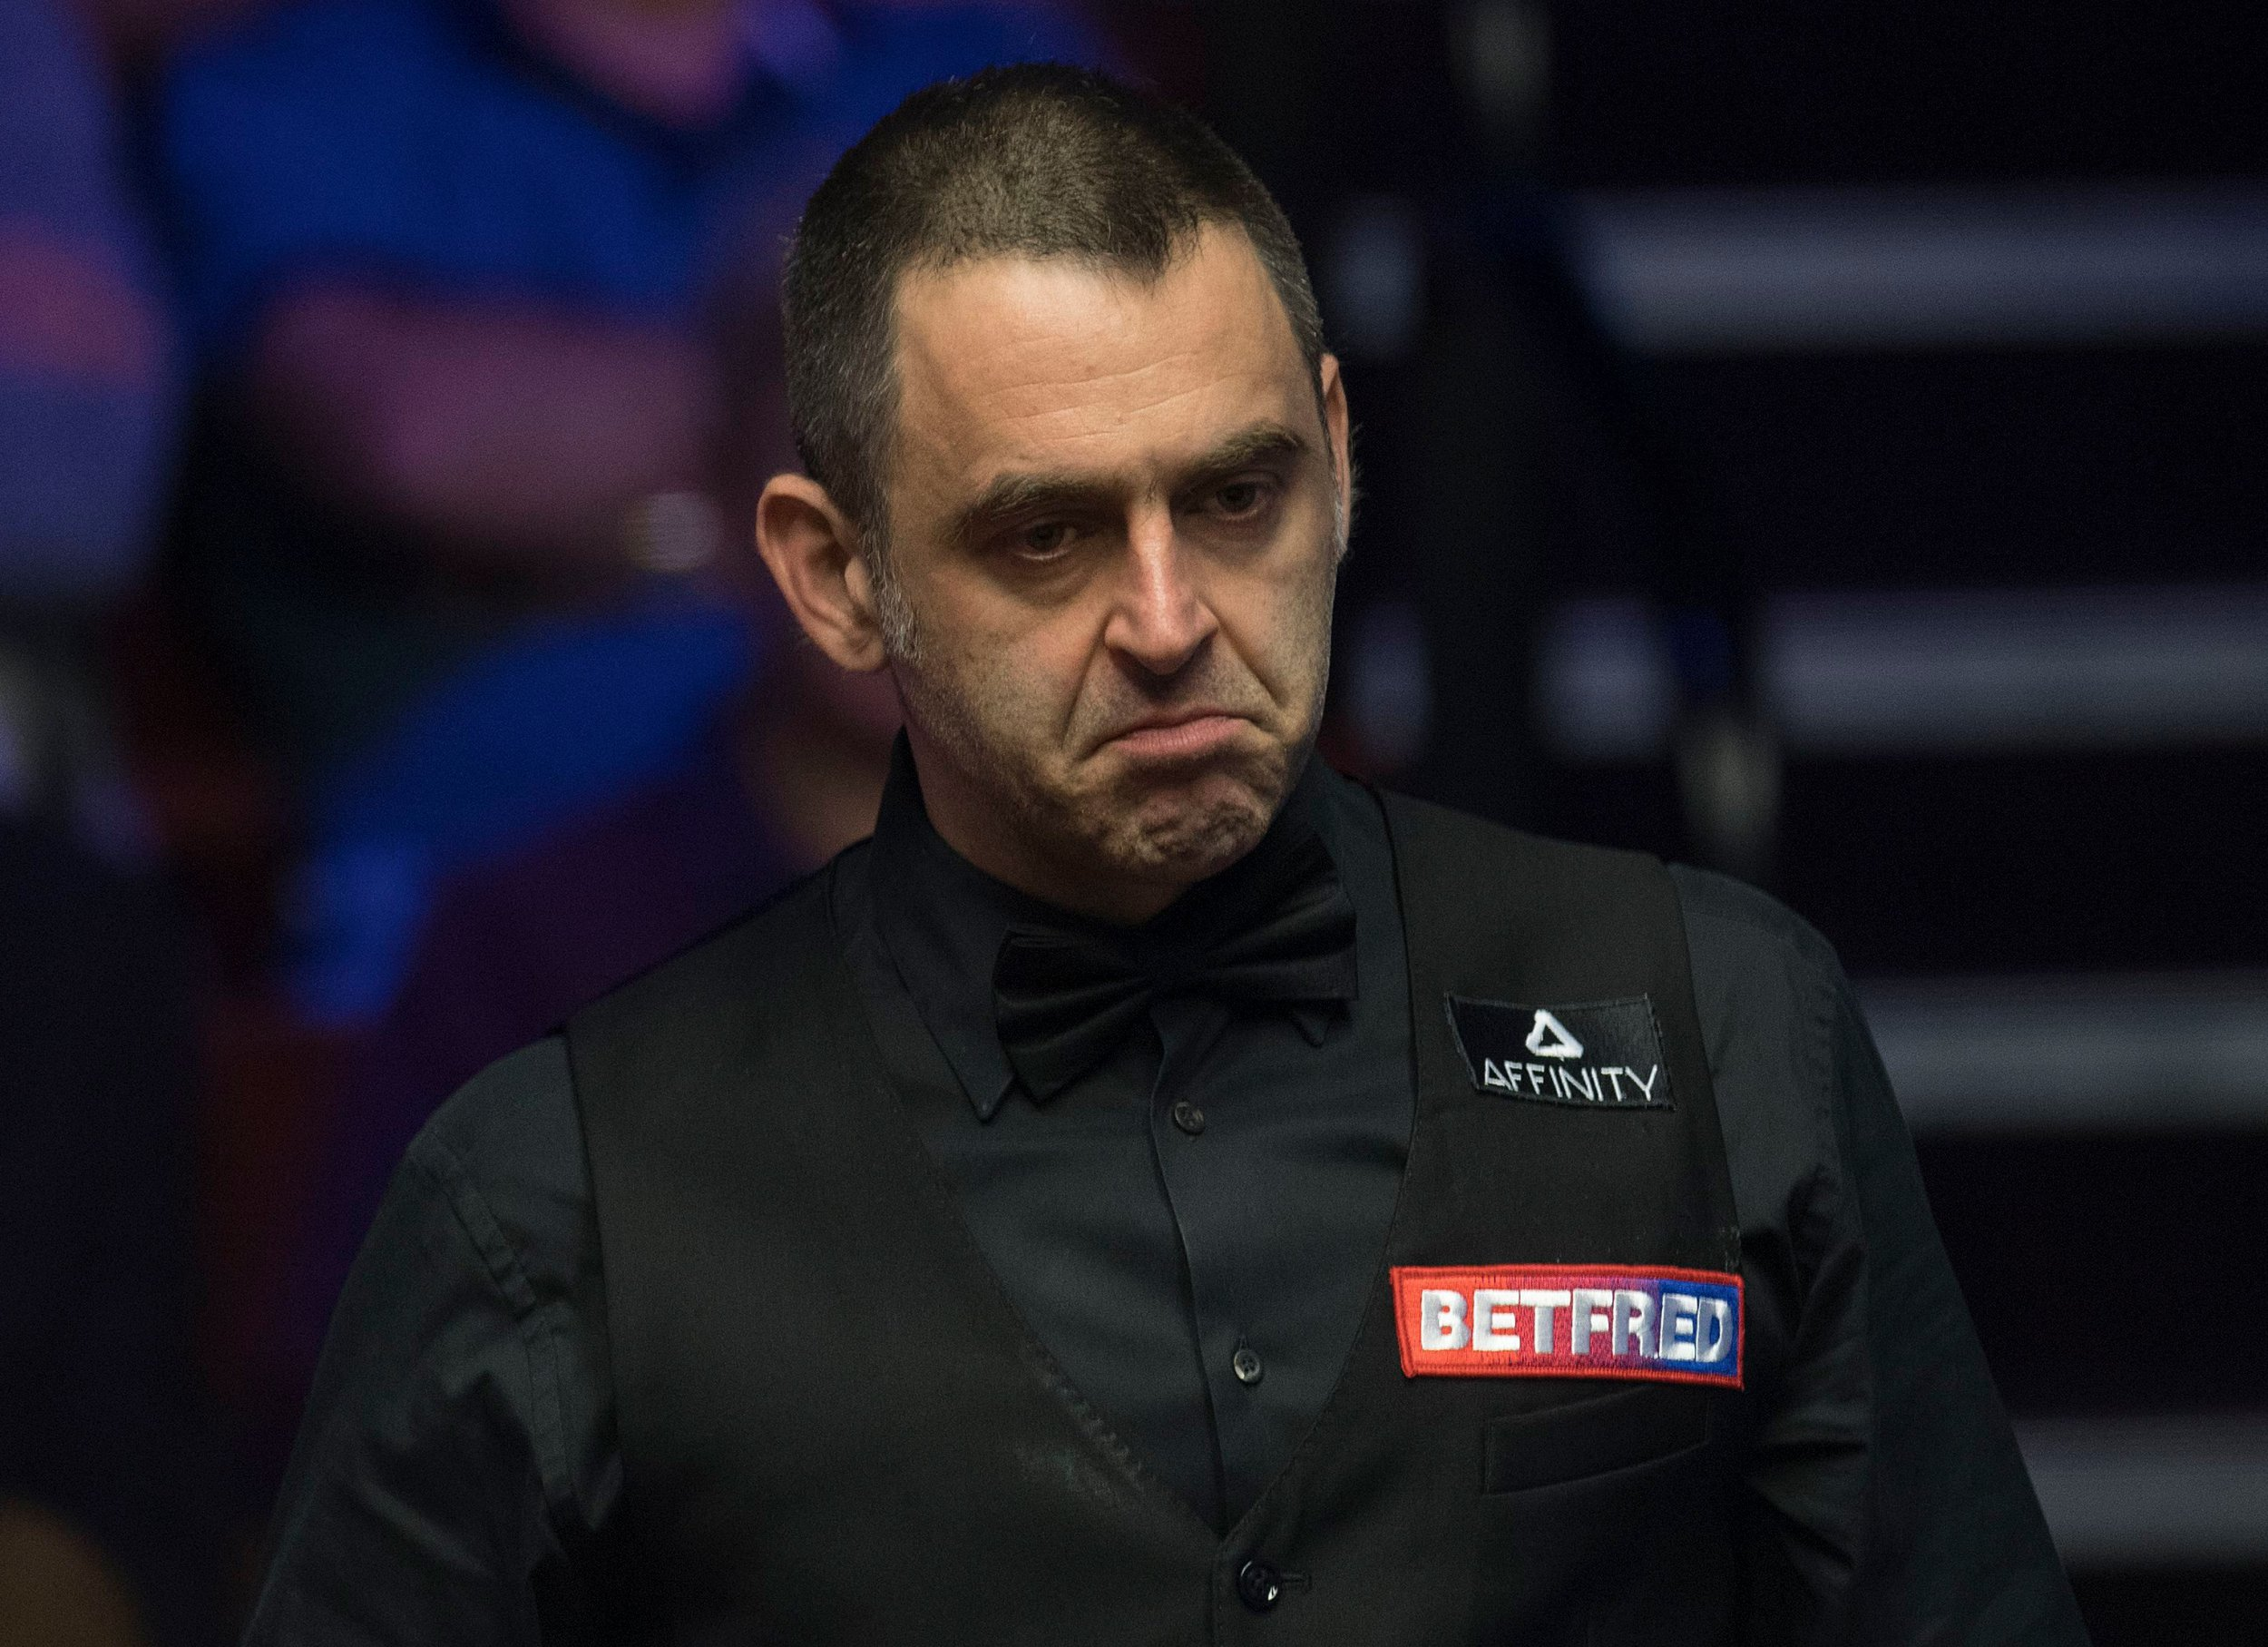 Ronnie O'Sullivan eyes up snooker coaching role with 'certain world class players'